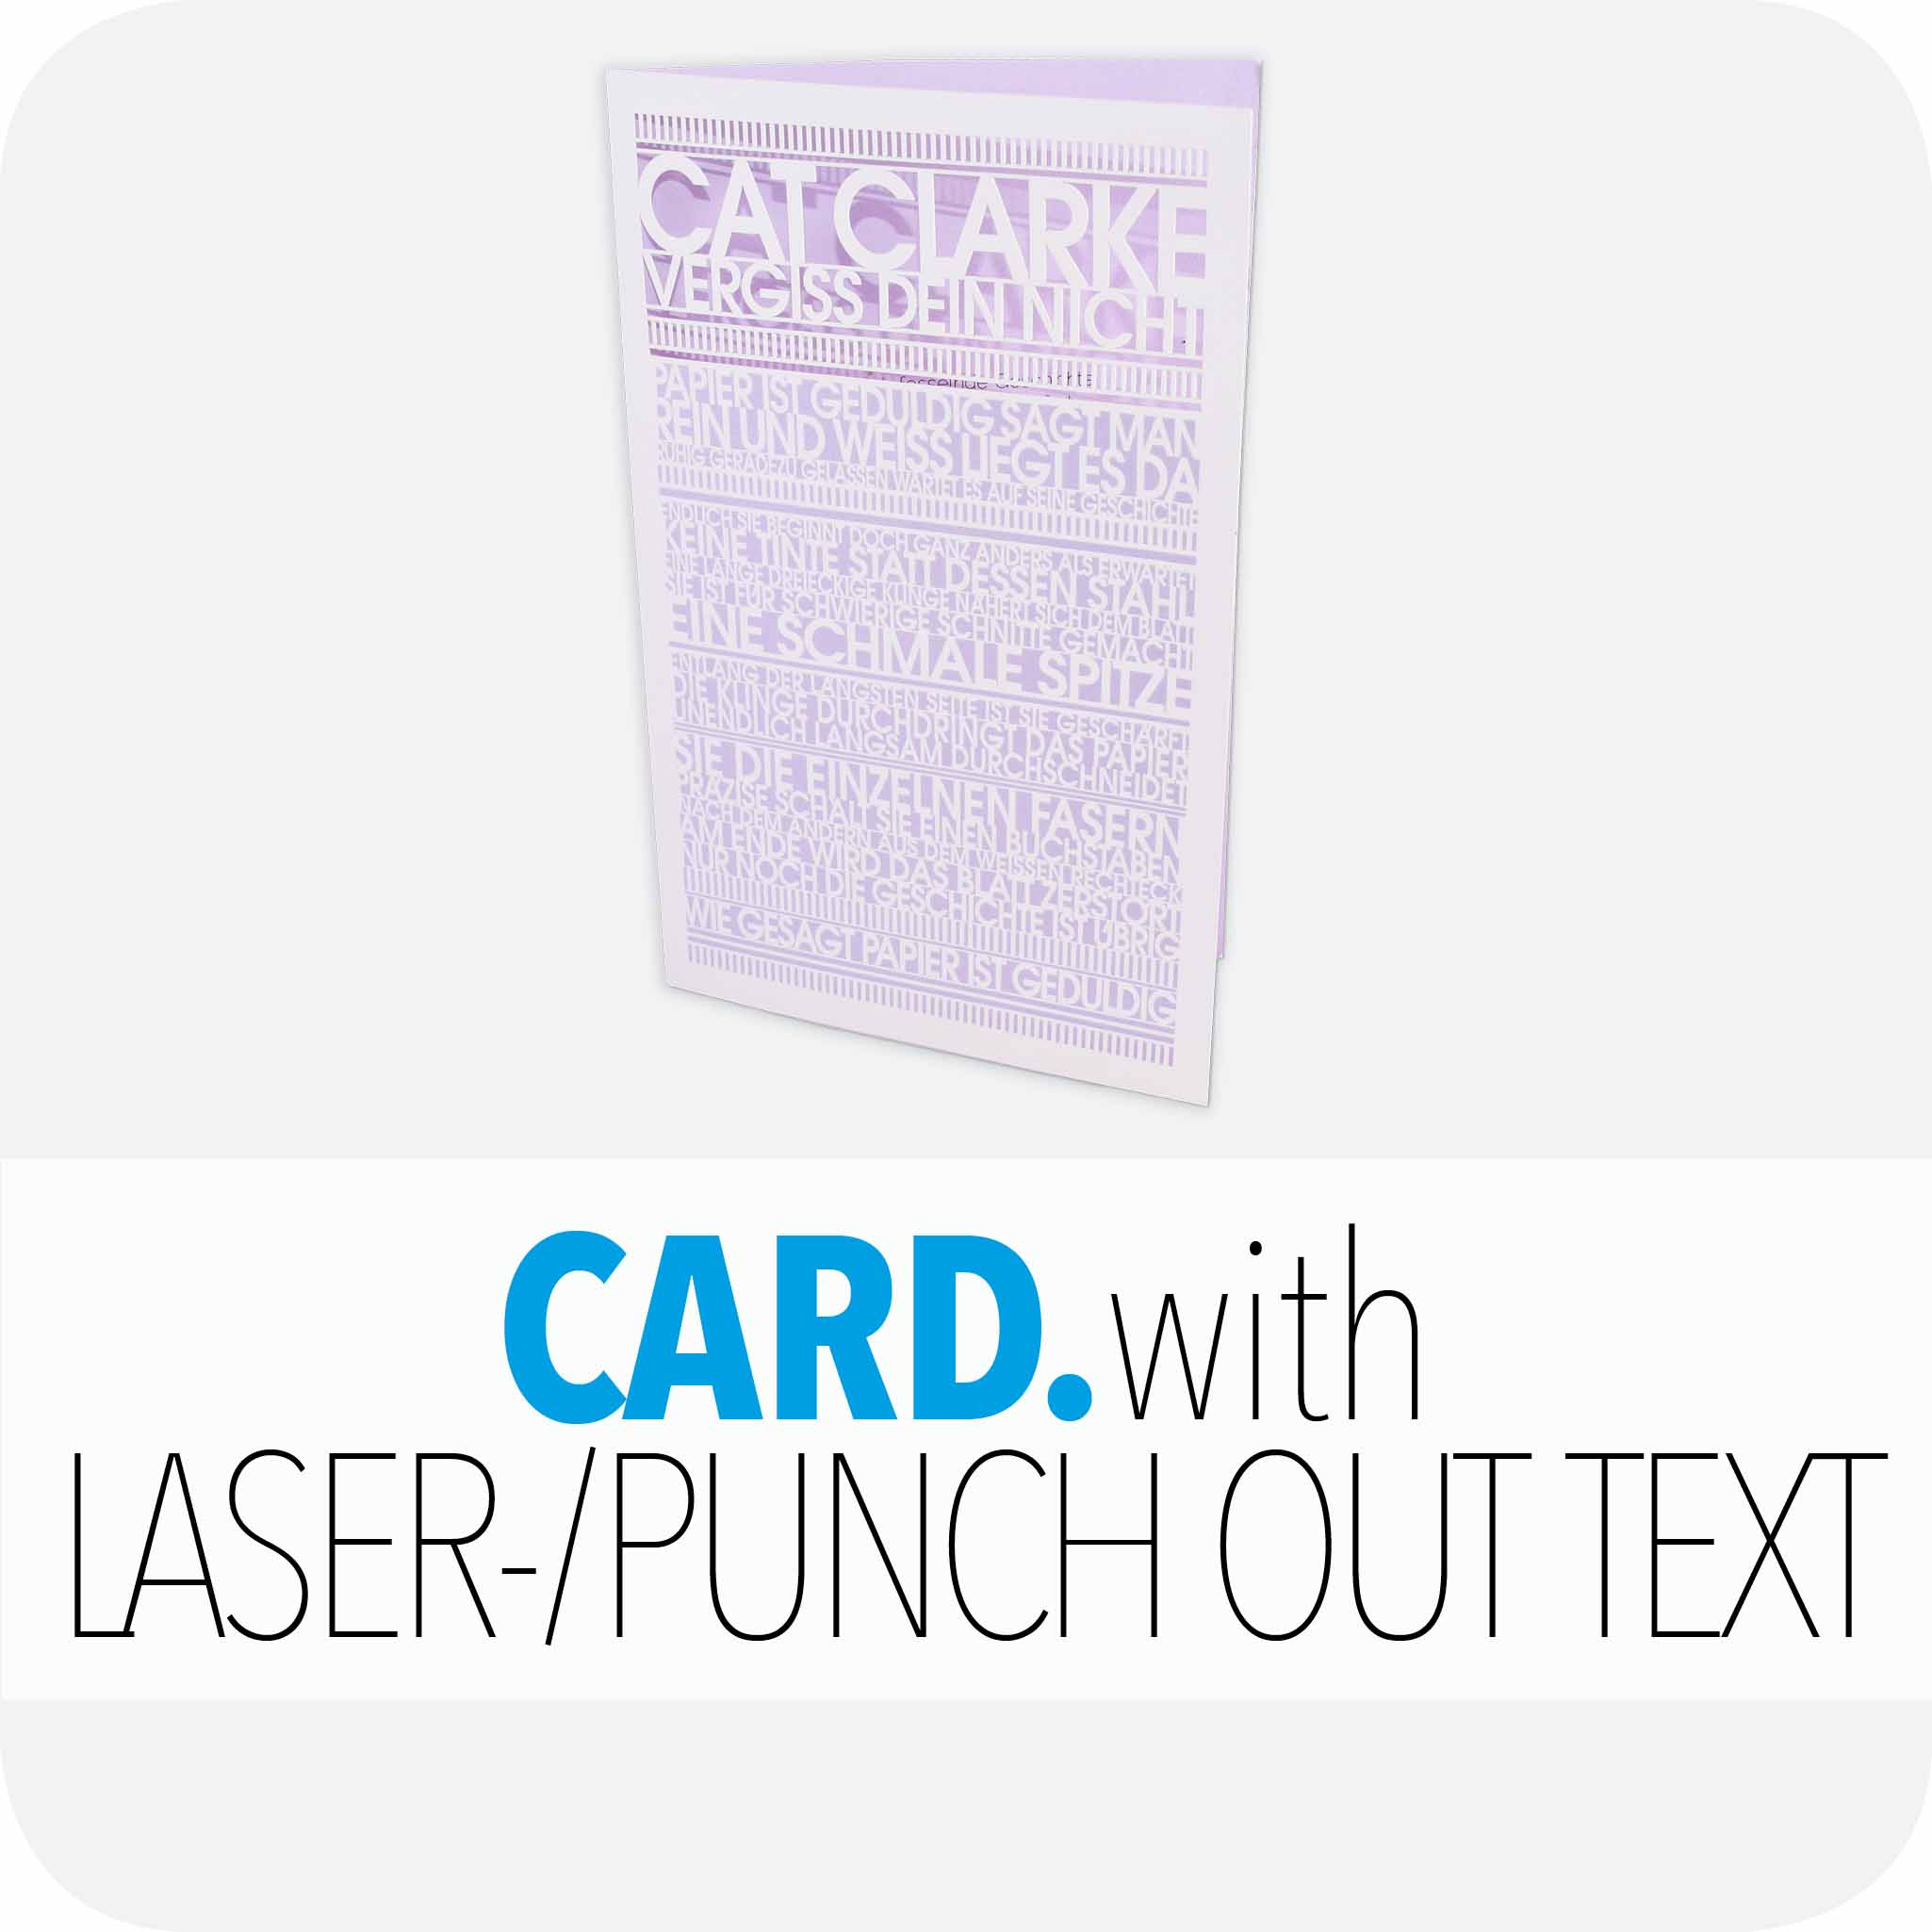 Card withlaser-/punch-out text